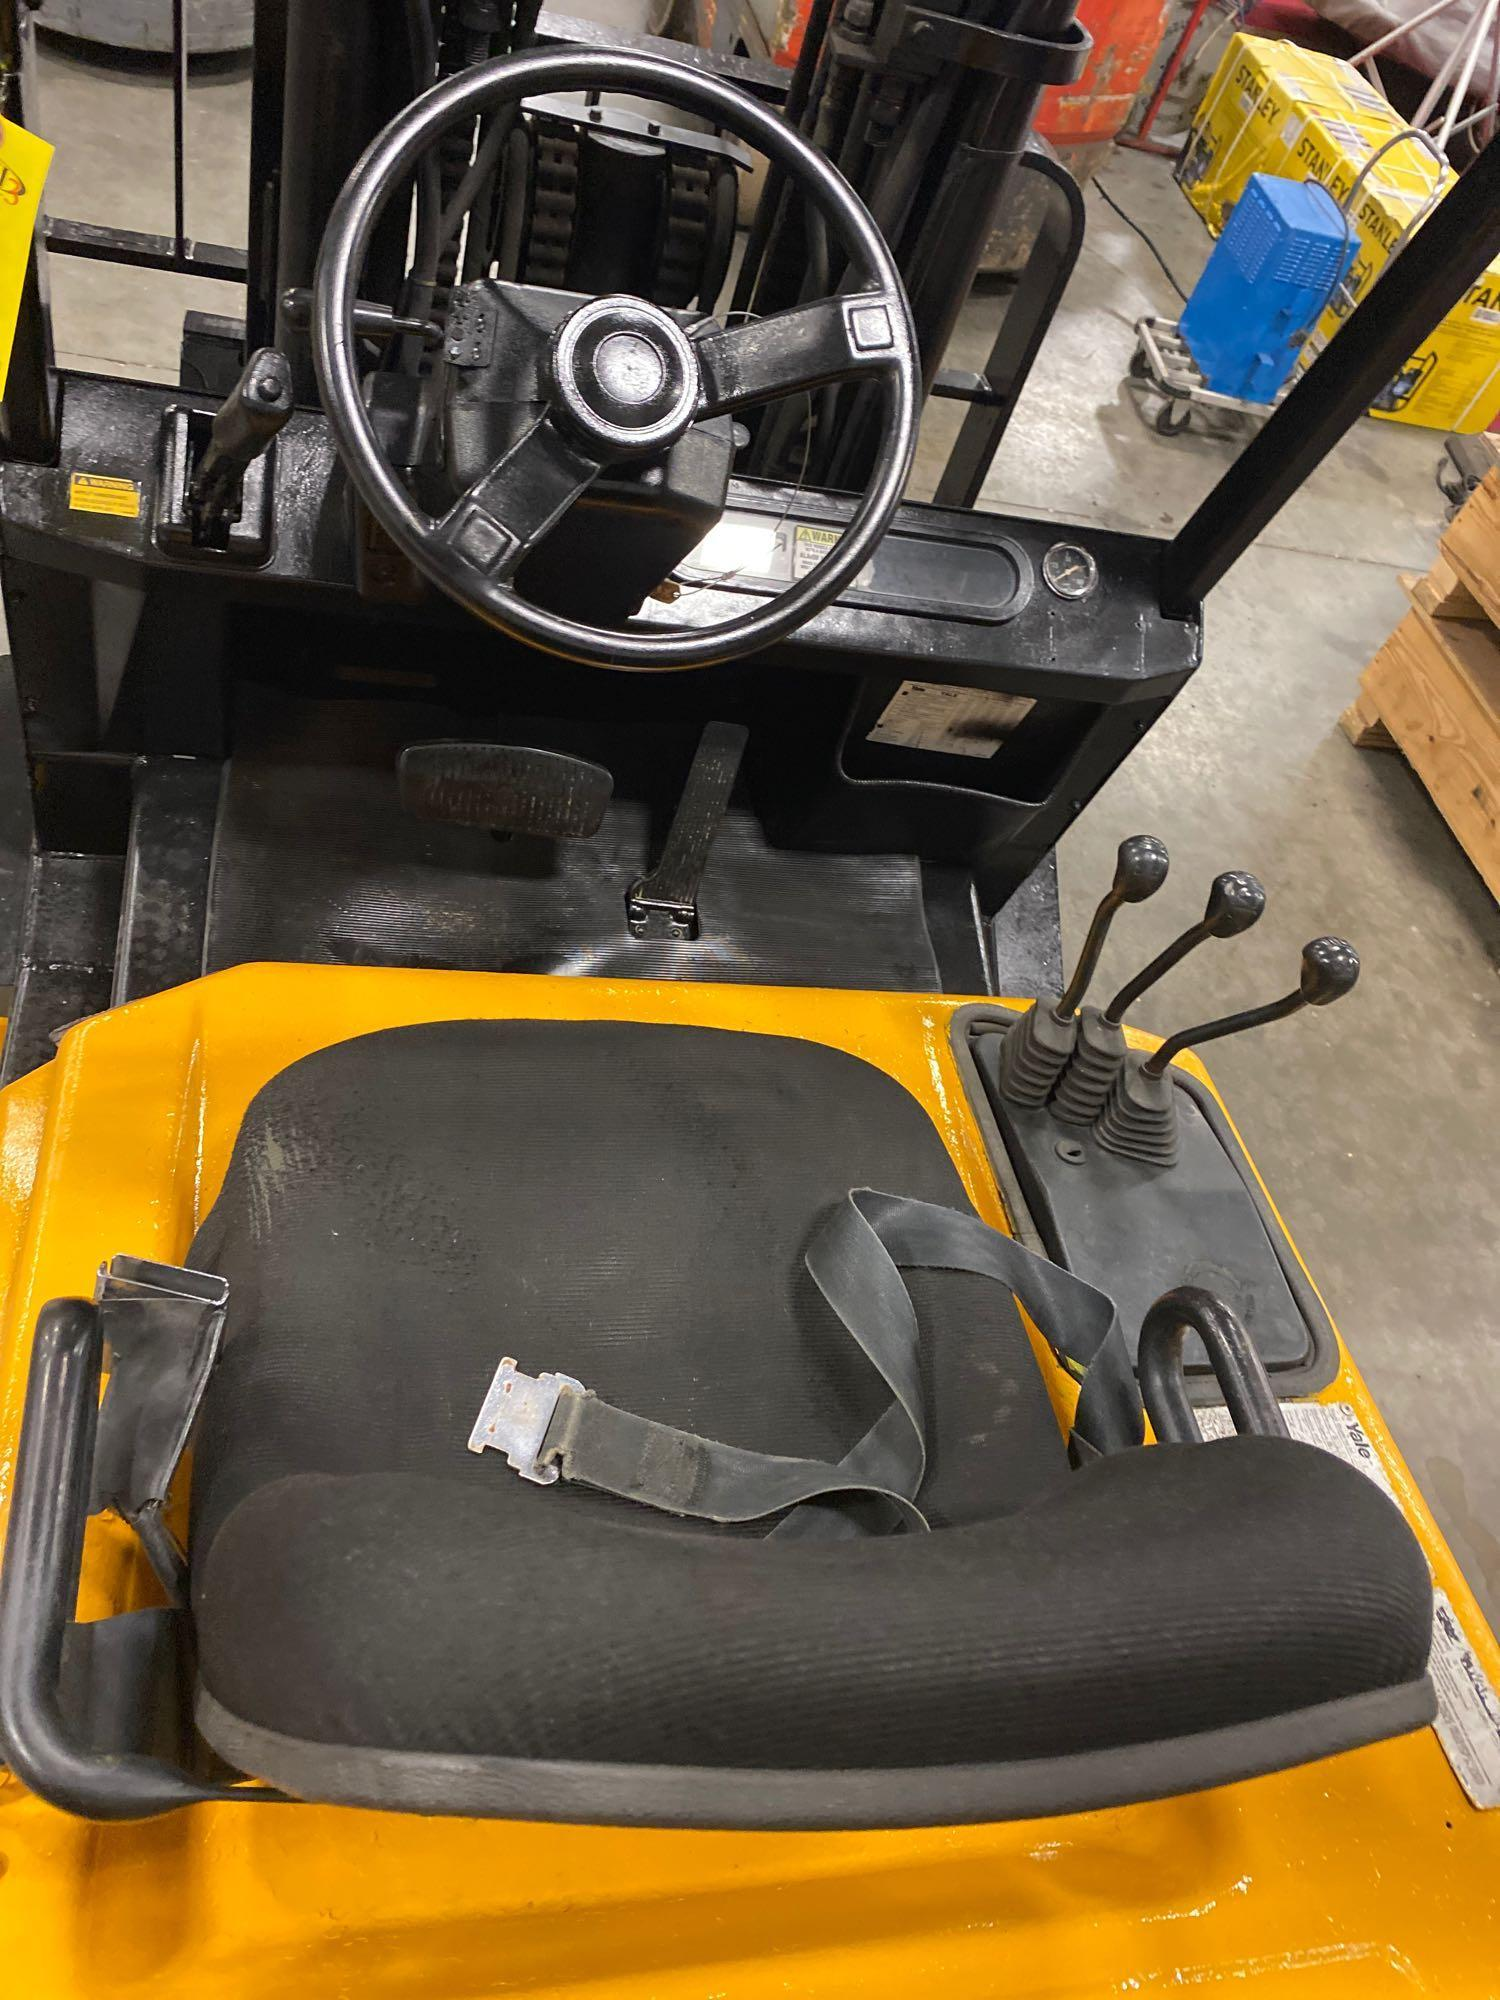 YALE LP FORKLIFT MODEL CLC120, APPROX. 12,000 LB CAPACITY, TILT, SIDE SHIFT, RUNS AND OPERATES - Image 9 of 10